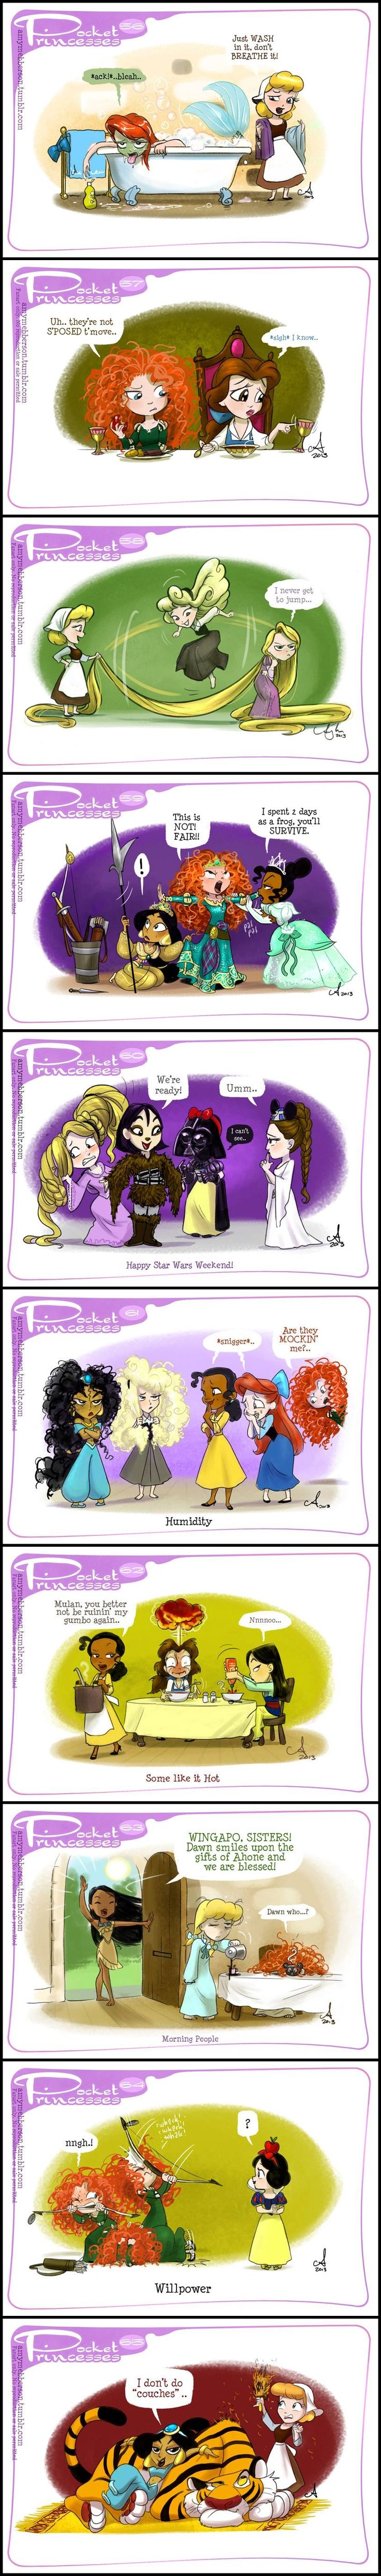 Pocket Princesses (Part 6) by Amy Mebberson